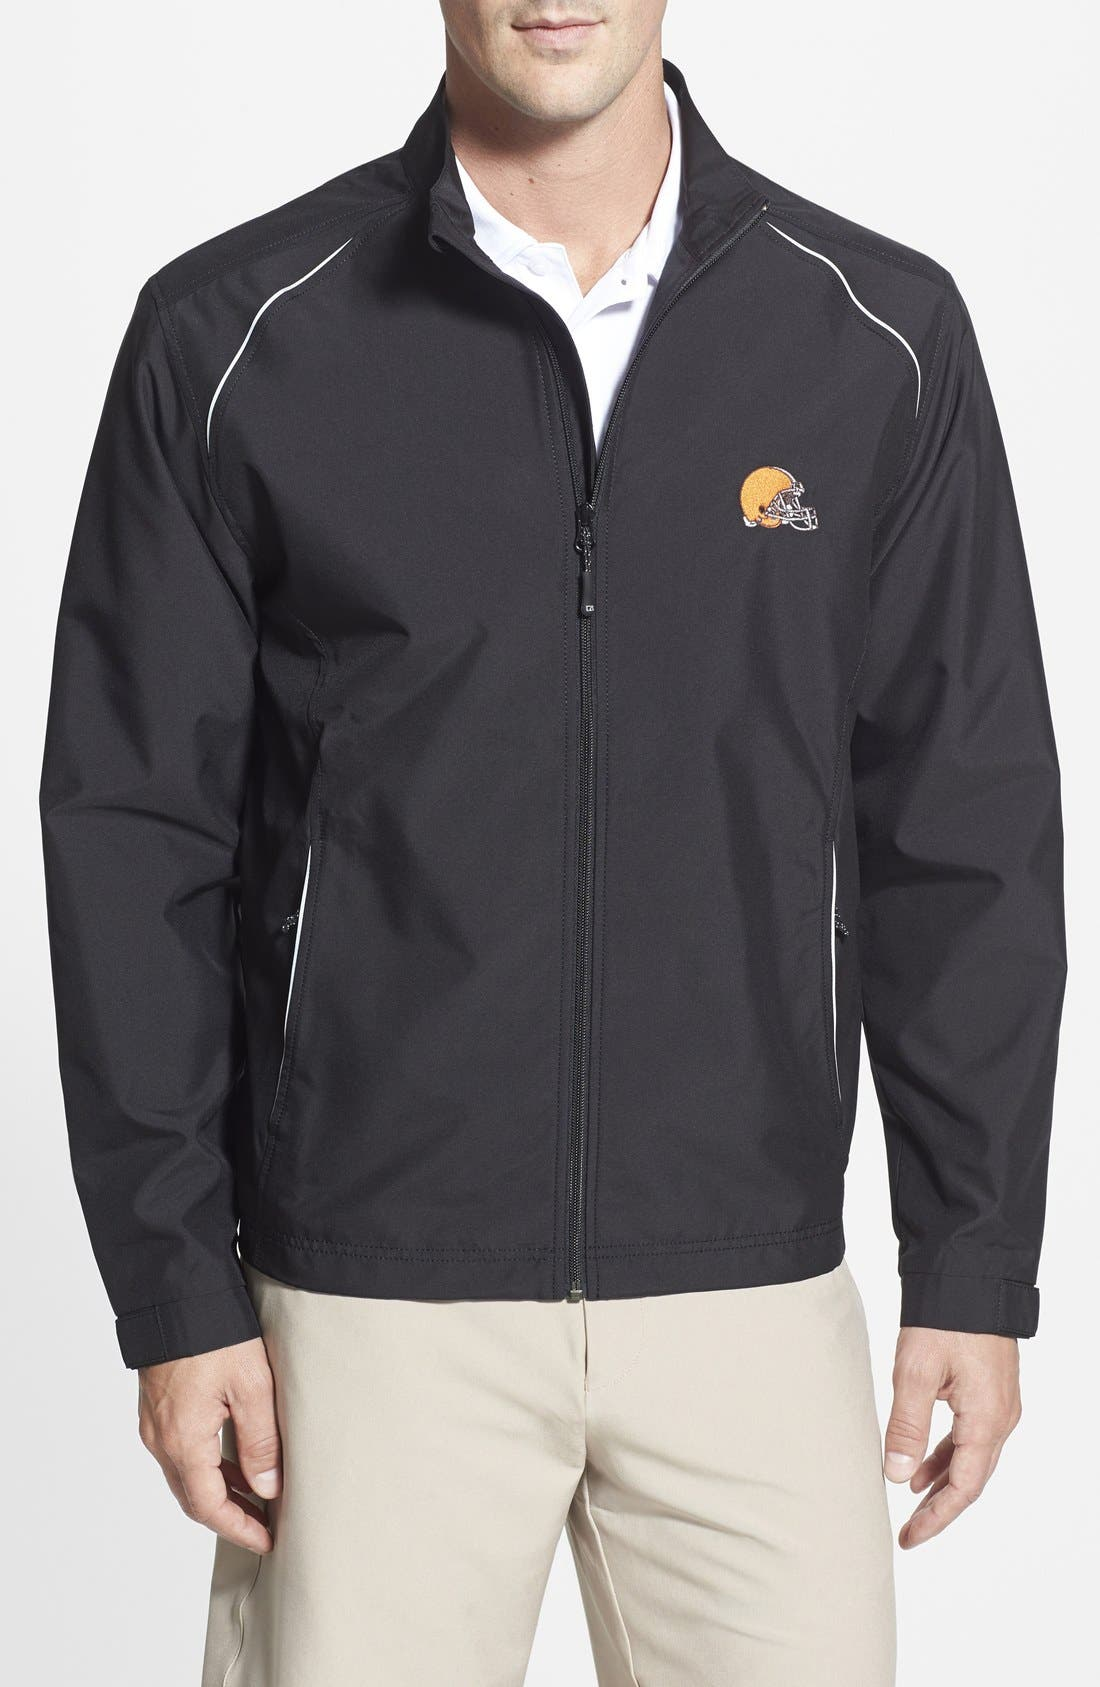 Cleveland Browns - Beacon WeatherTec Wind & Water Resistant Jacket,                             Main thumbnail 1, color,                             001